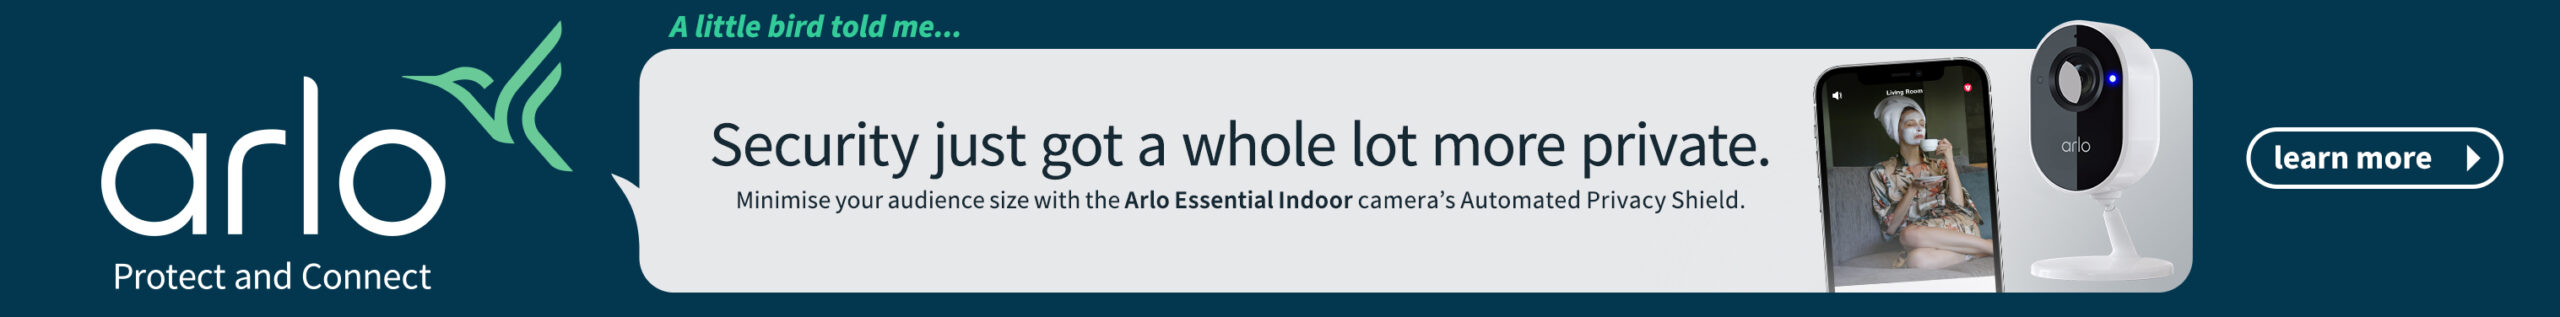 ARL0355 Arlo ESS Indoor Generic Banner 728x90 V4 scaled Review: KEF Slim Speakers The Ultimate Flat Panel Partner?